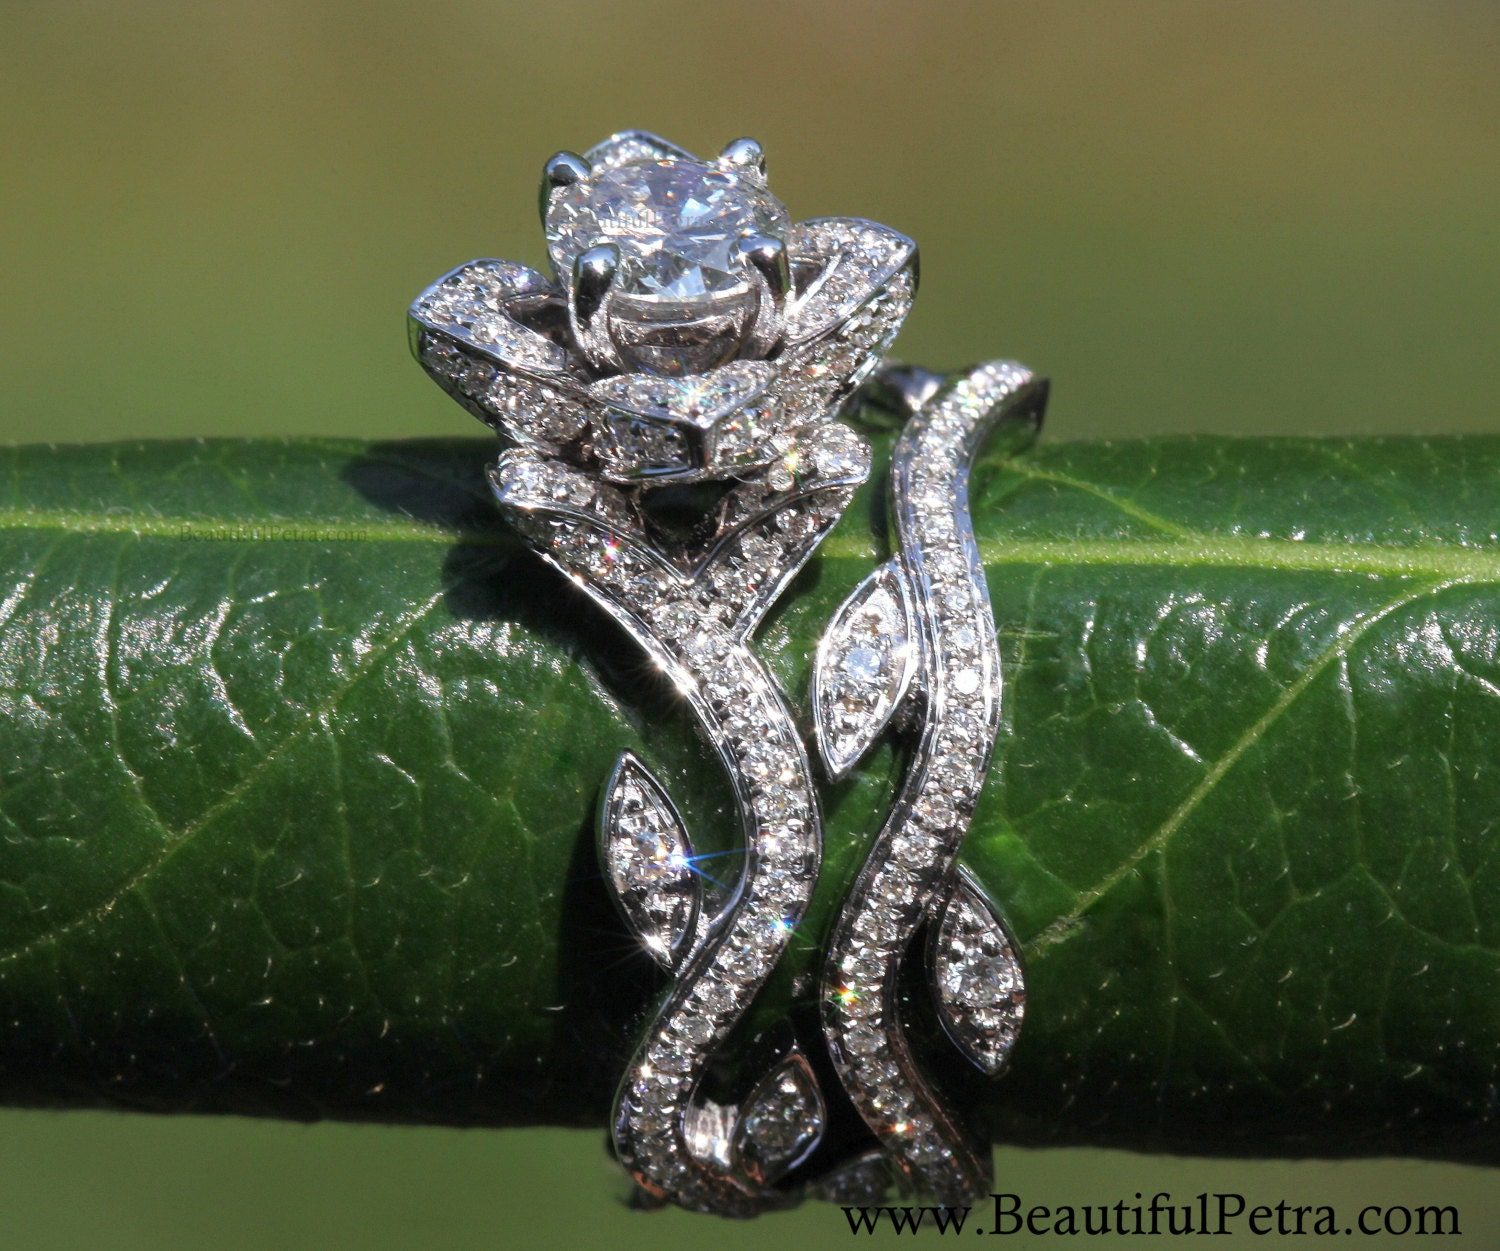 diamond rose il band design fullxfull lotus of listing blooming leaf the wedding rings engagement leaves flower art set ring work patented zoom on brides